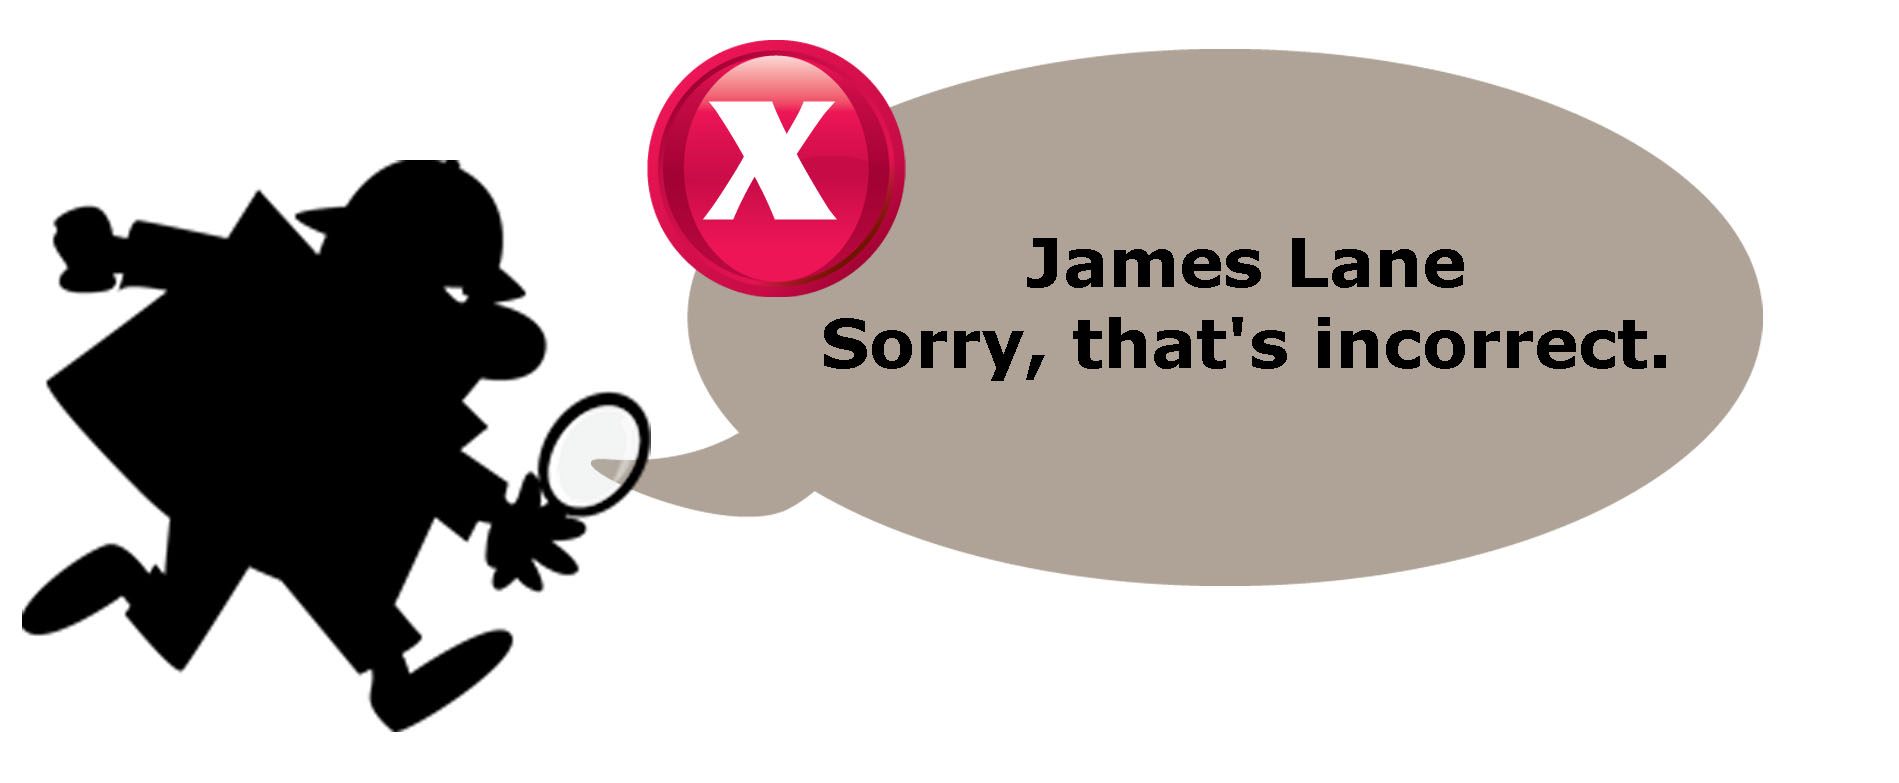 James Lane. Sorry, that's incorrect.